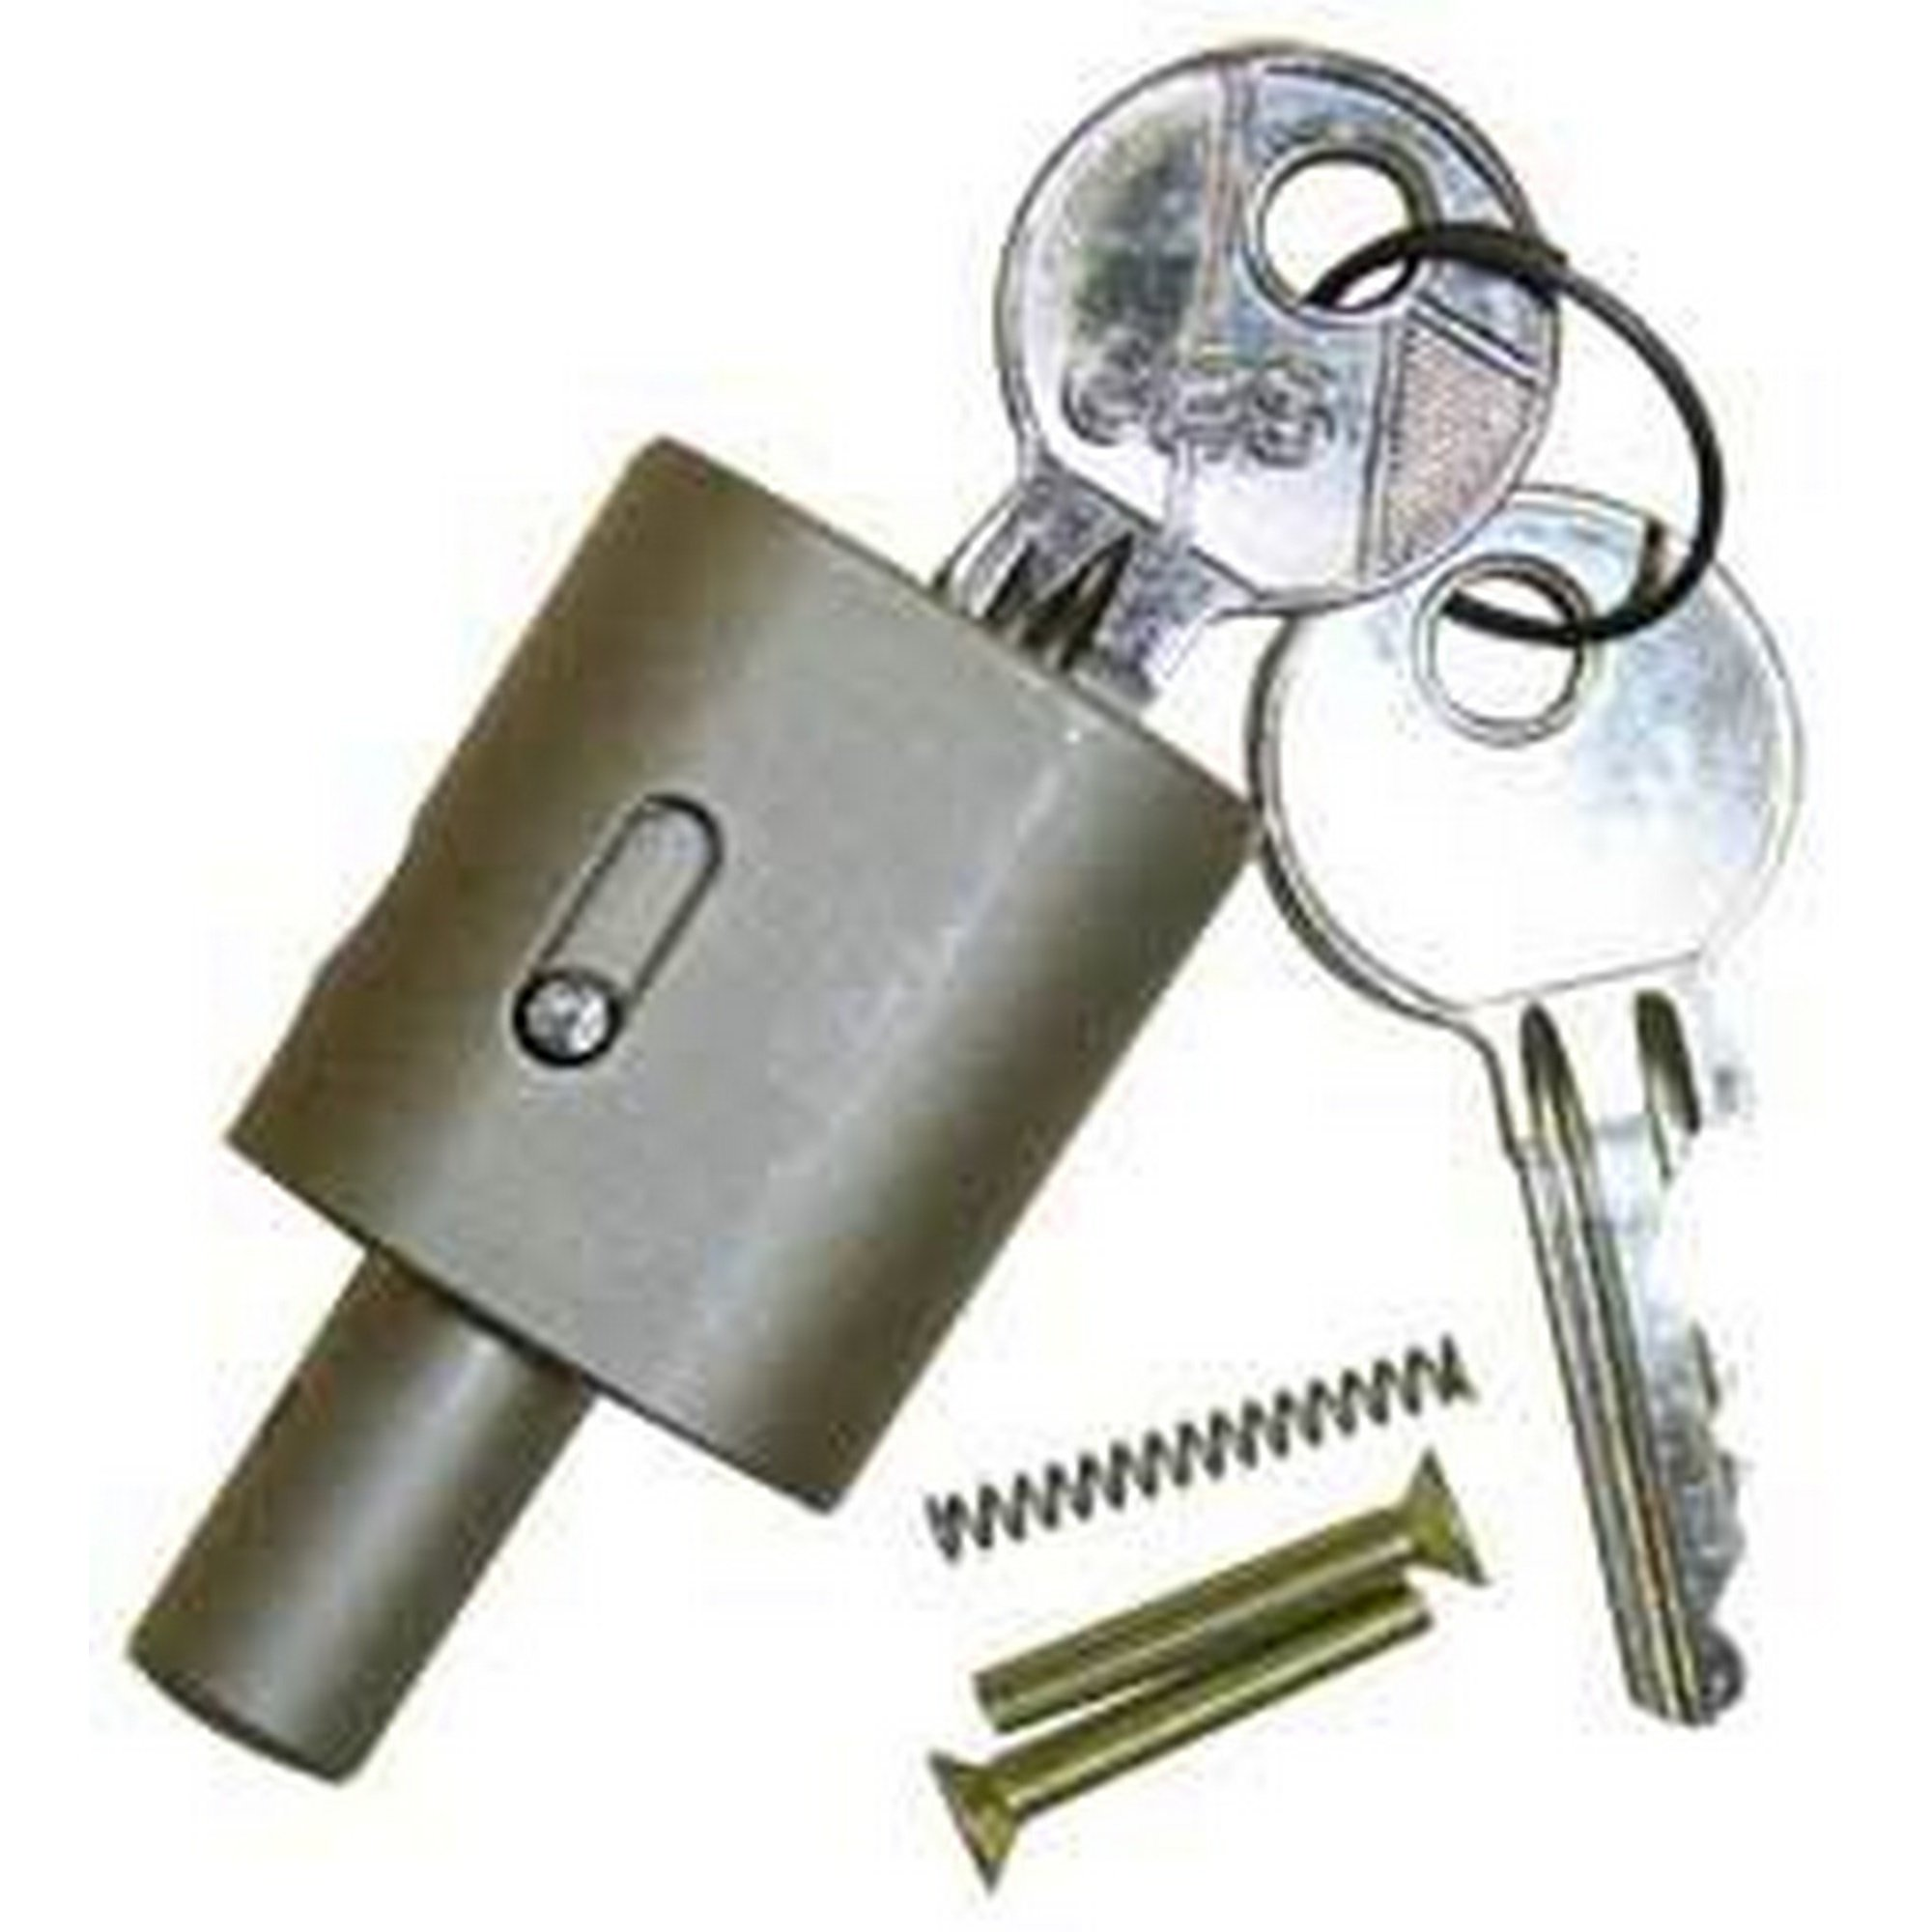 AL-KO Replacement Lock Cylinder (One Size) (Gray) by AL-KO